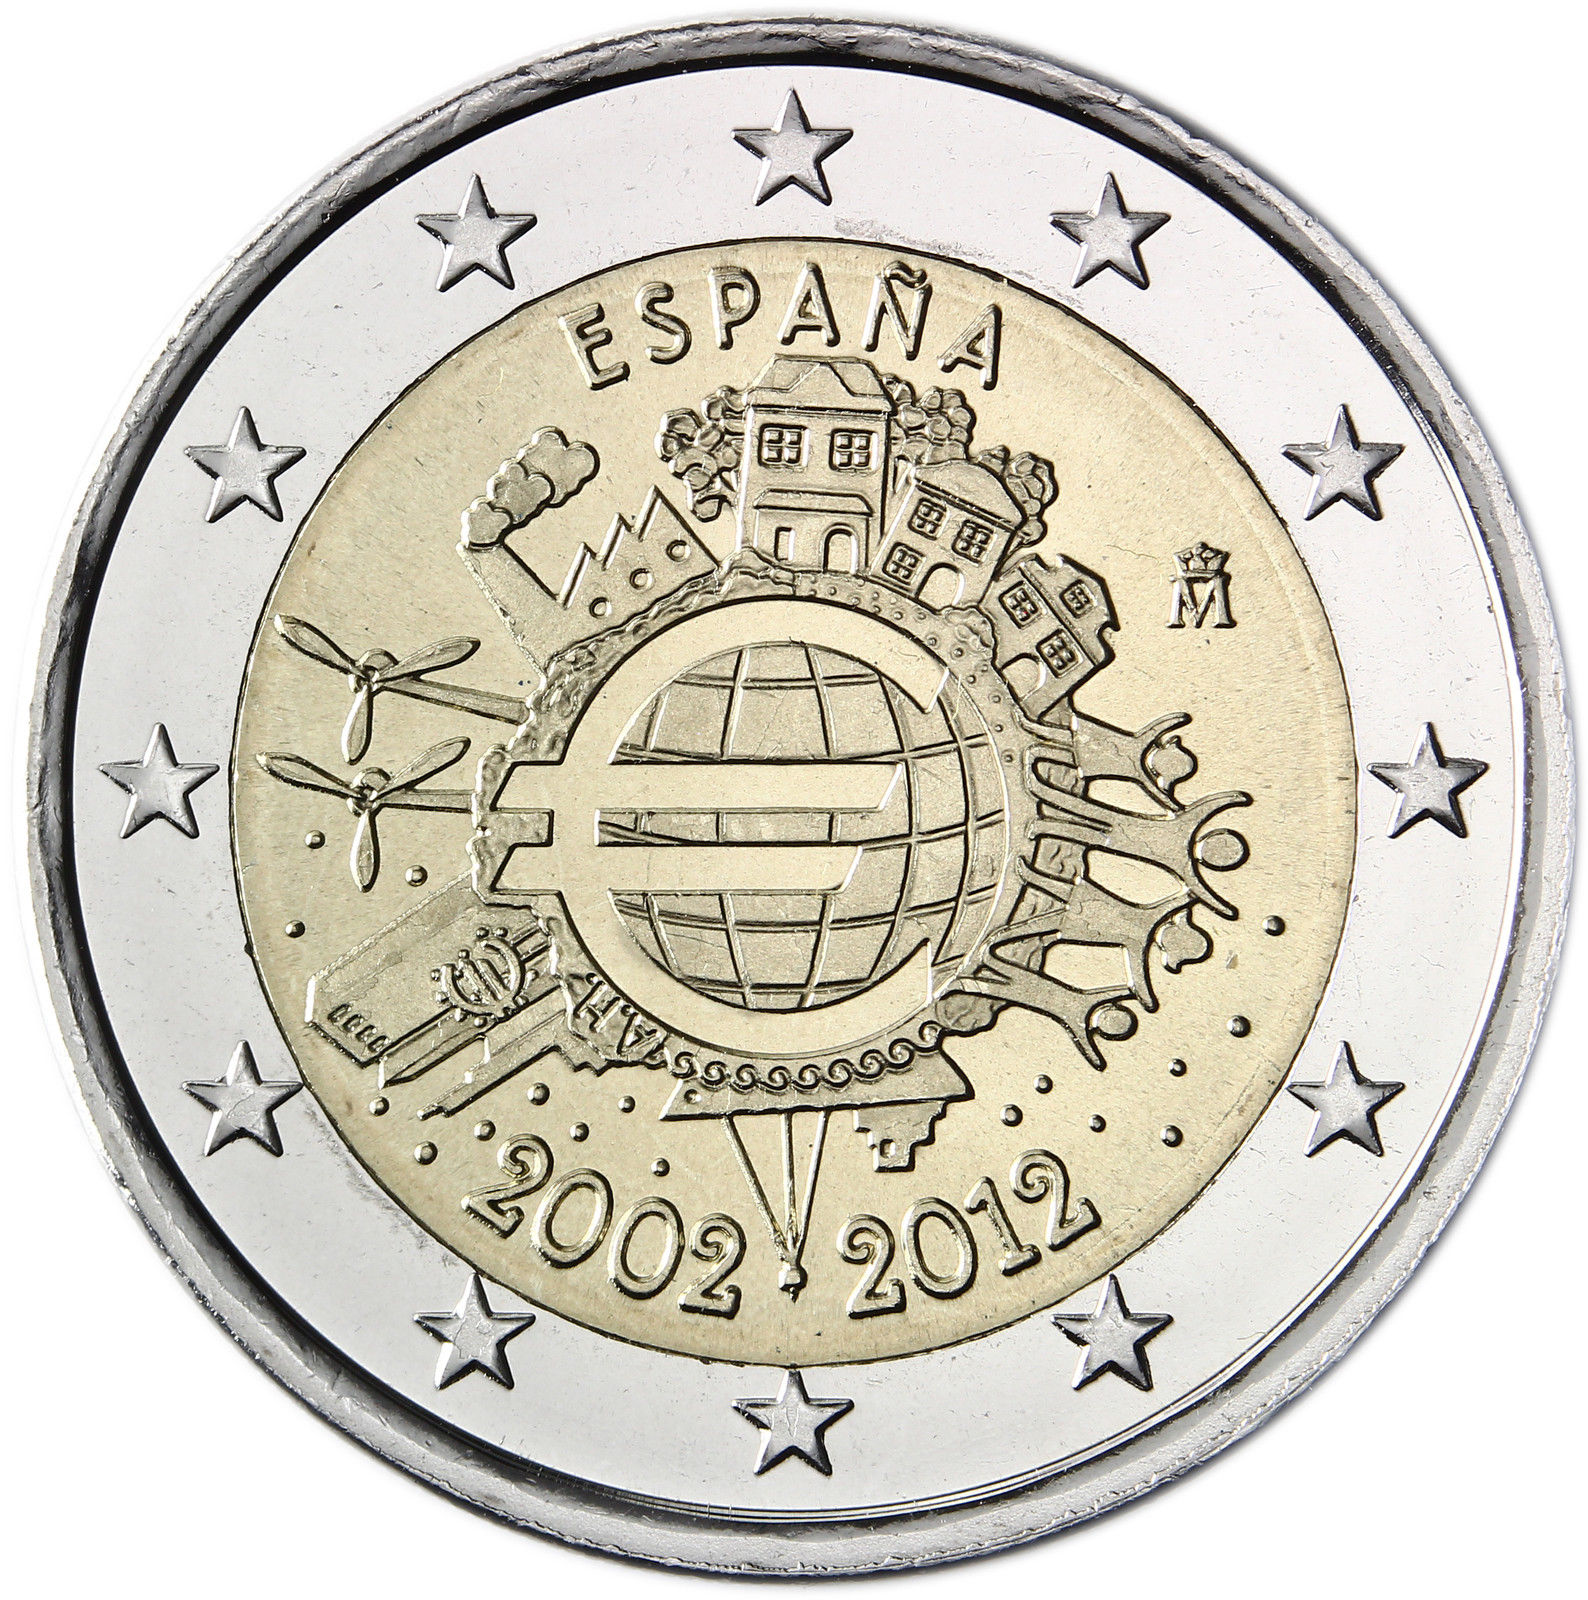 Spain 2 Euro 2012 10 Years Of Euro Banknotes And Coins